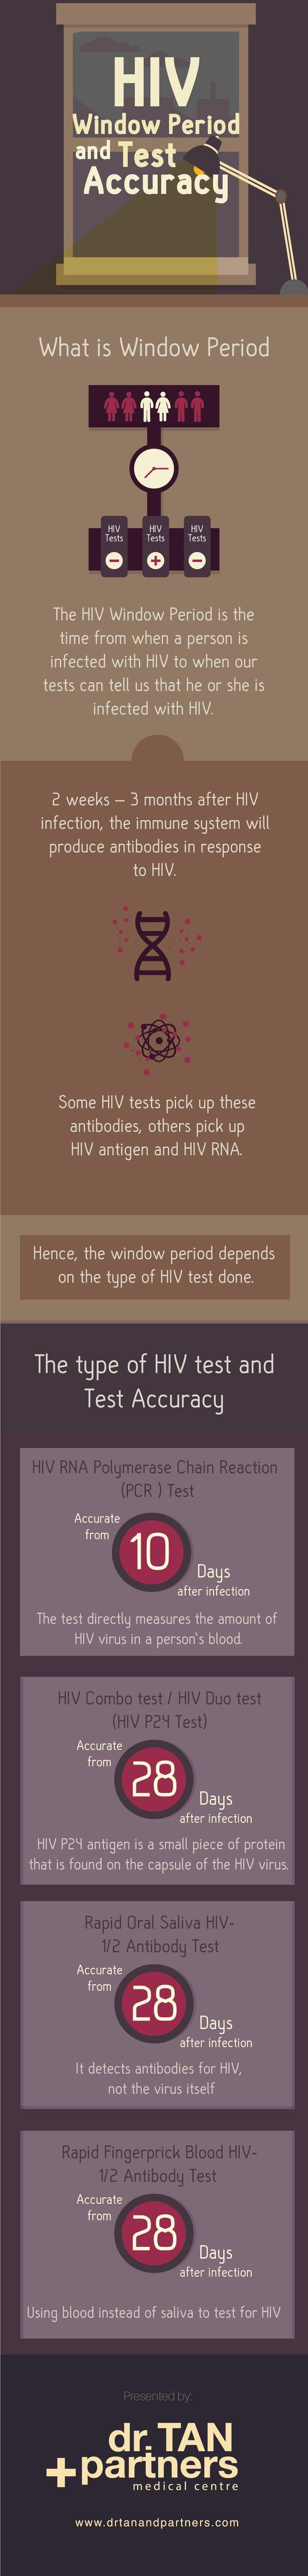 hiv testing now as easy as at home pregnancy test hiv test and